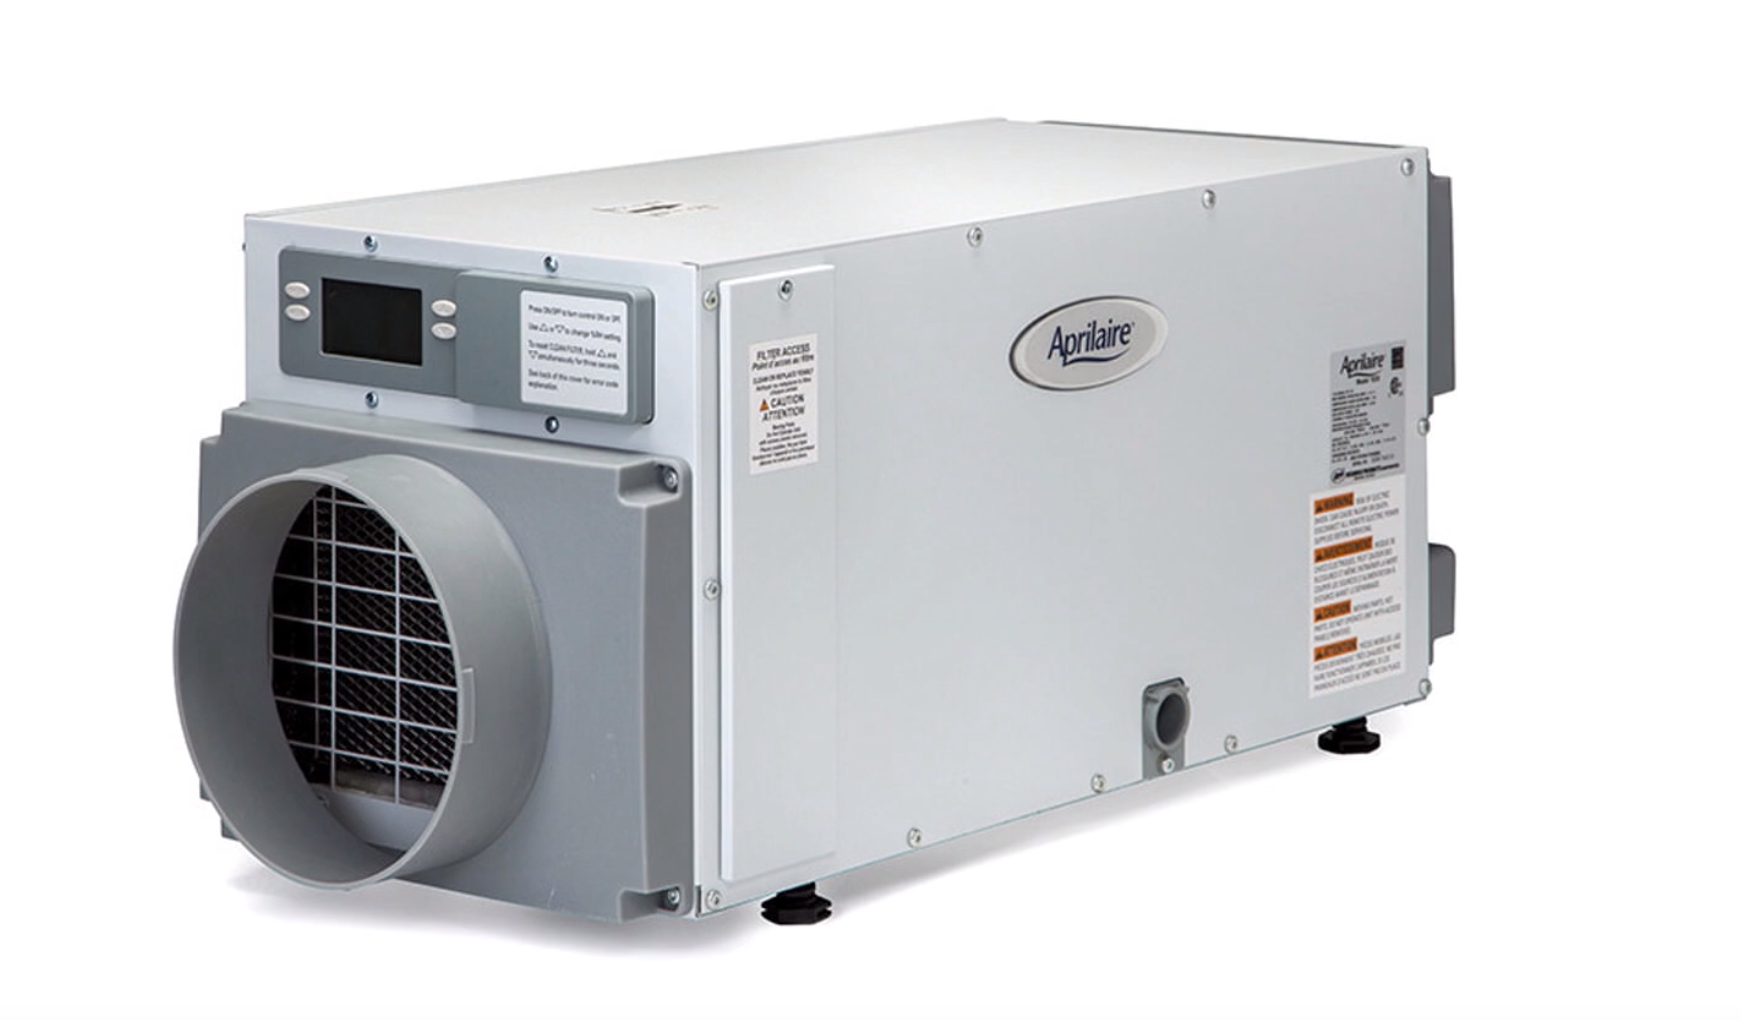 A dehumidifier can help keep your office or restaurant comfortable if you have an oversized ac unit